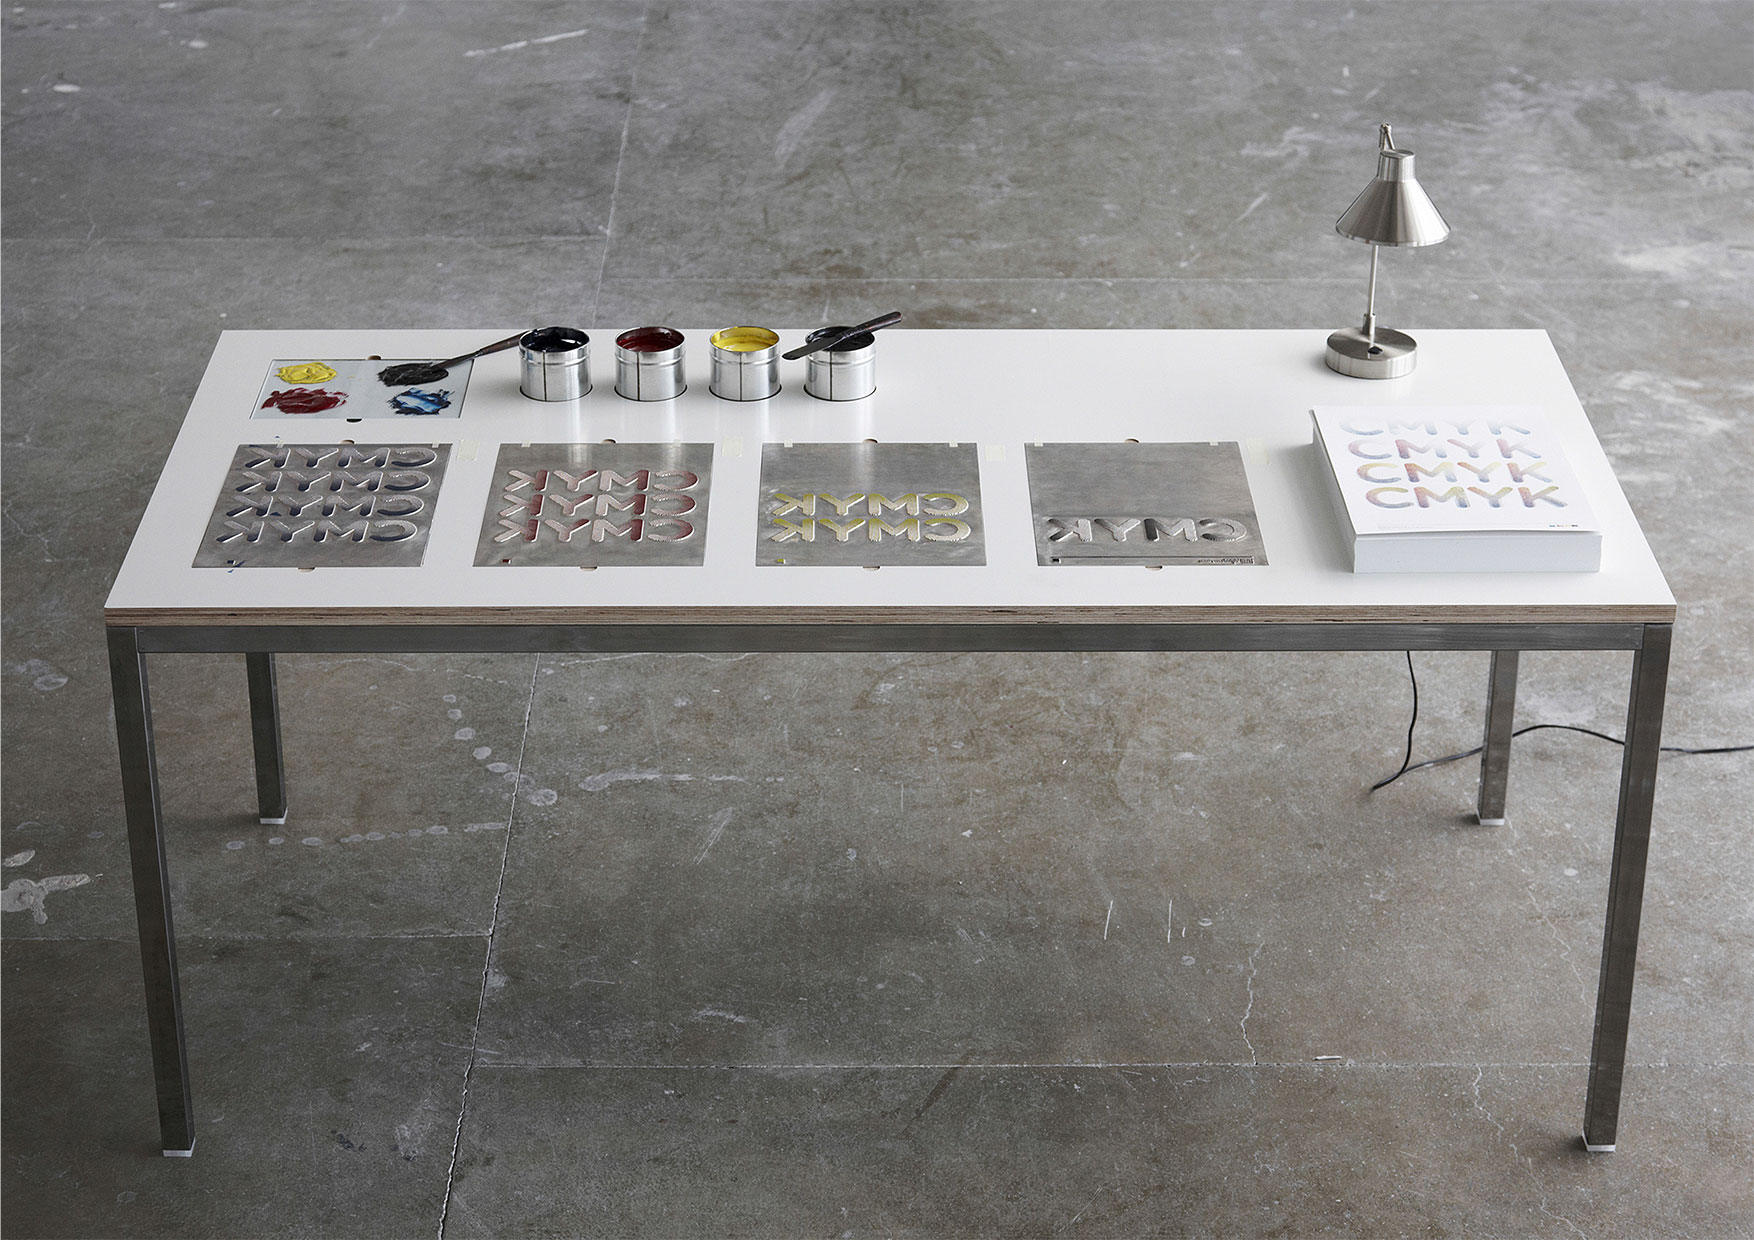 Agency 39 s printing table gives new meaning to 39 desktop for Table design meaning